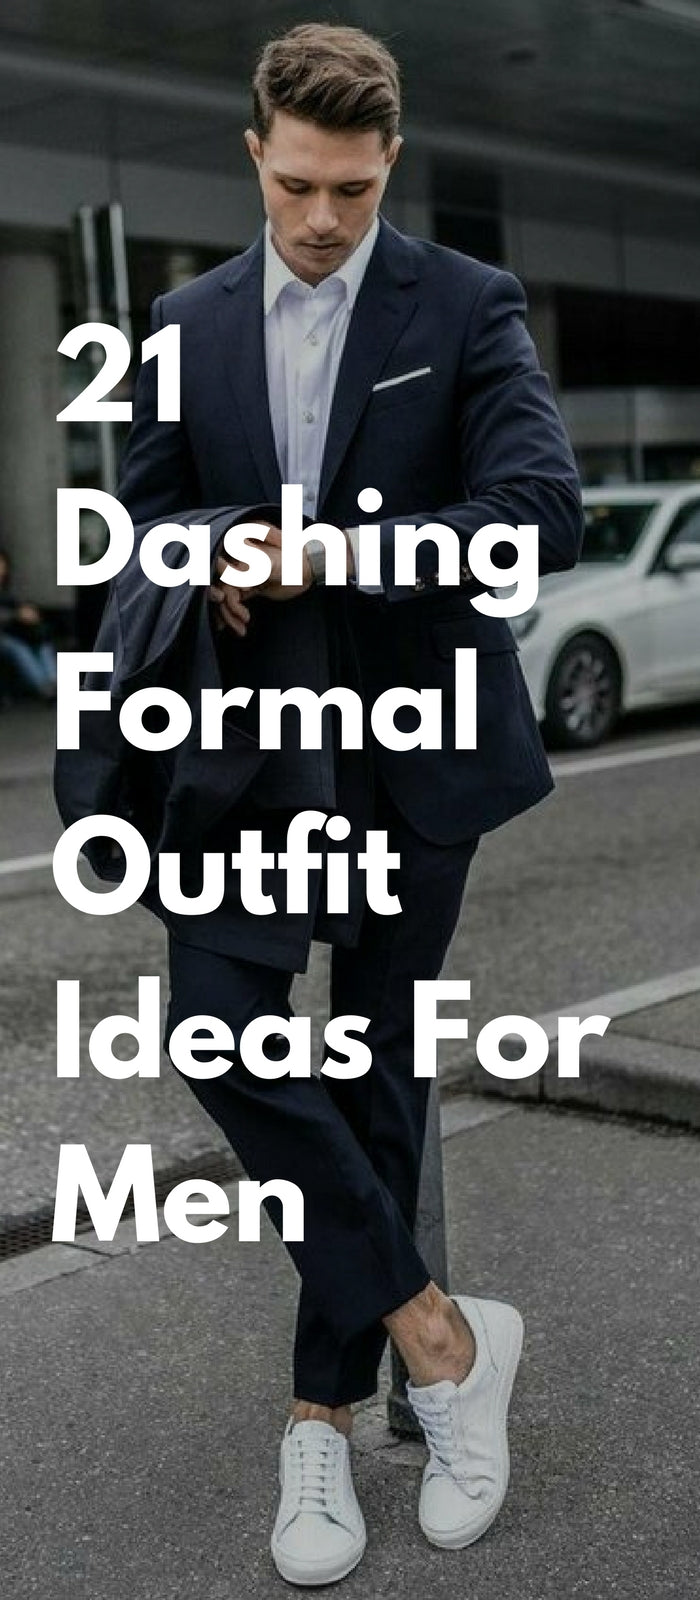 21 dashing formal outfit ideas for men – lifestyleps